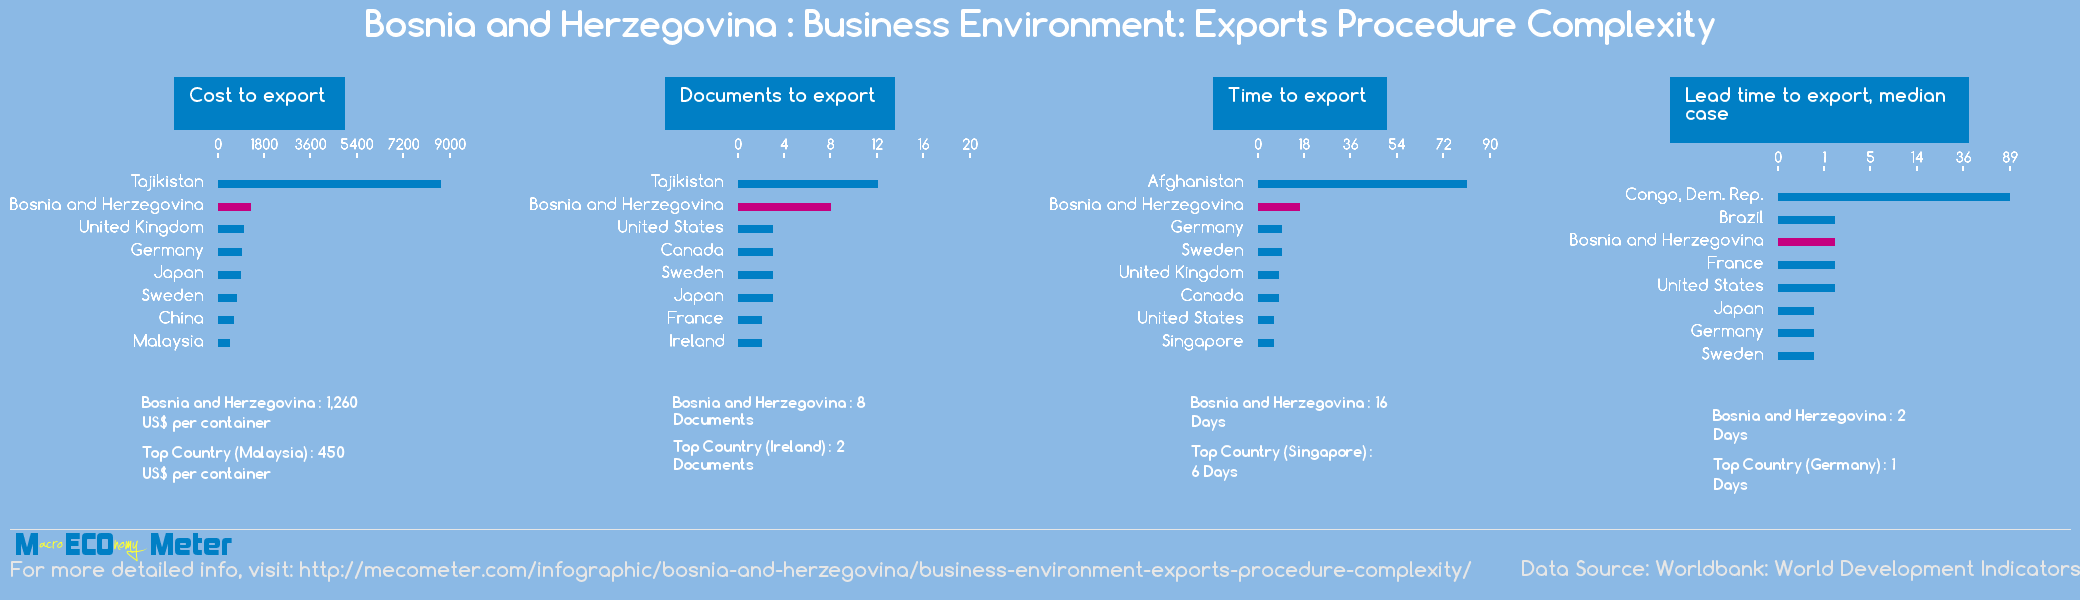 Bosnia and Herzegovina : Business Environment: Exports Procedure Complexity